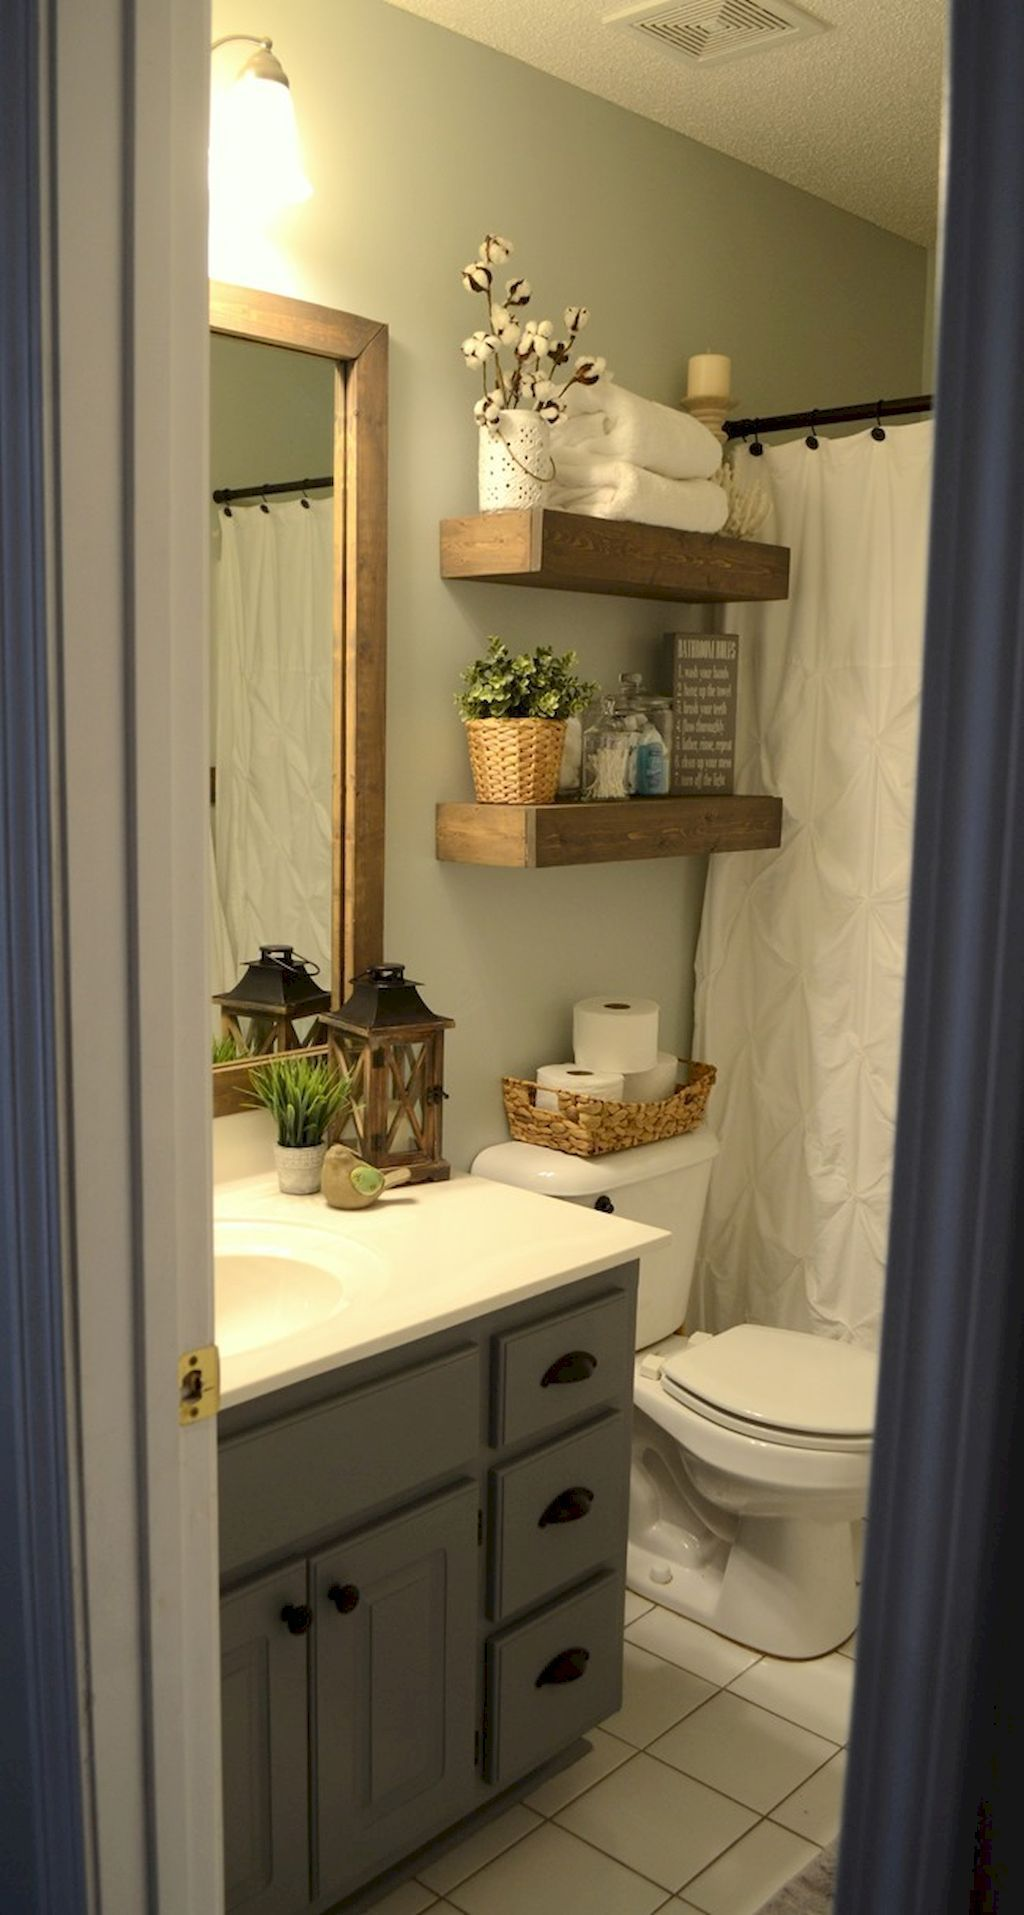 vintage farmhouse bathroom remodel ideas on a budget (56) | idées ... - Budget Salle De Bain